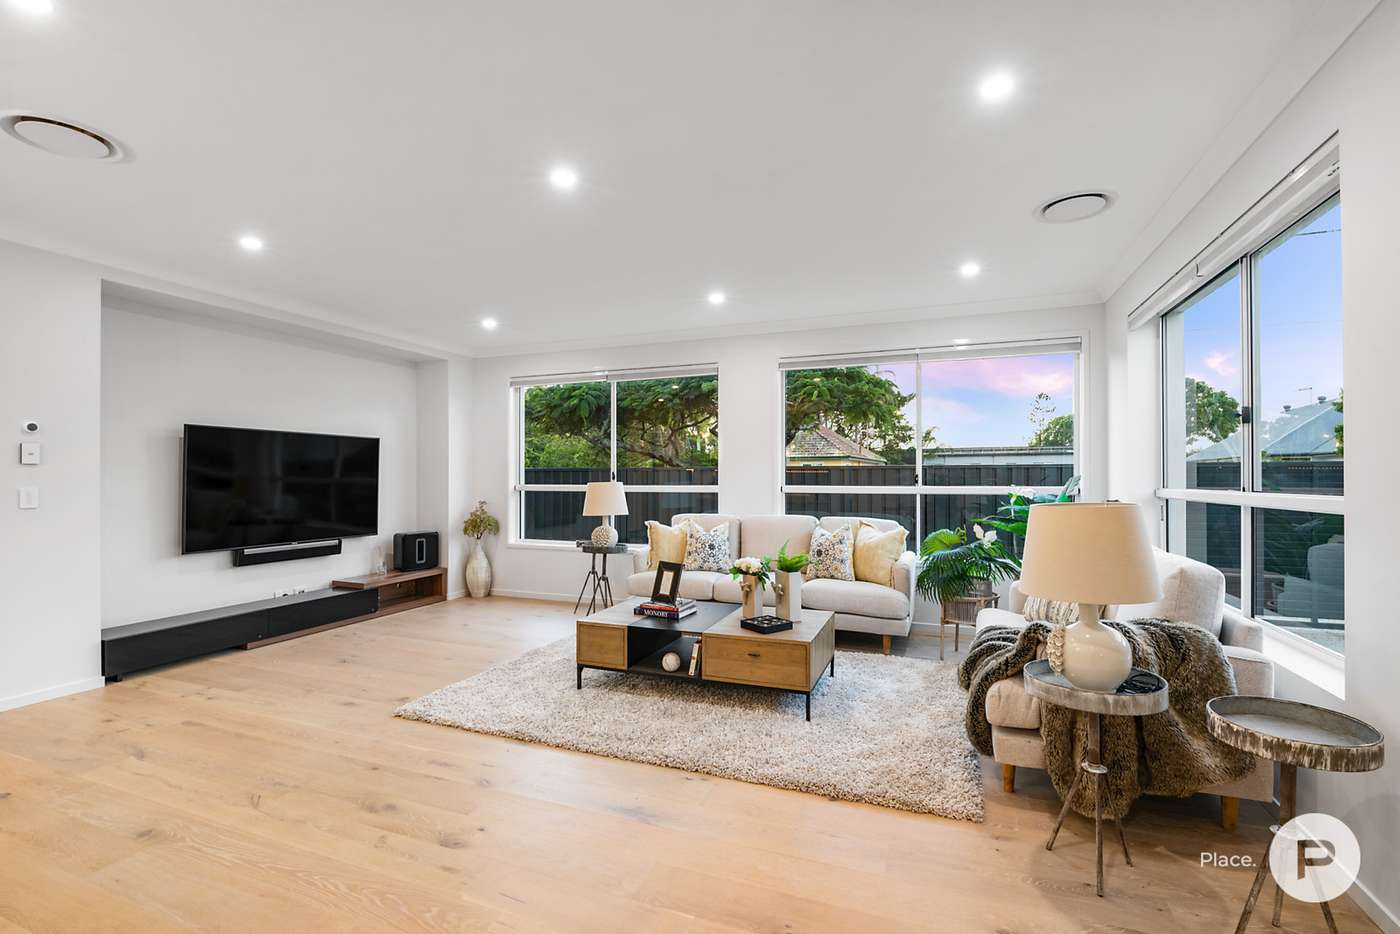 Sixth view of Homely house listing, 71 Margate Street, Mount Gravatt East QLD 4122